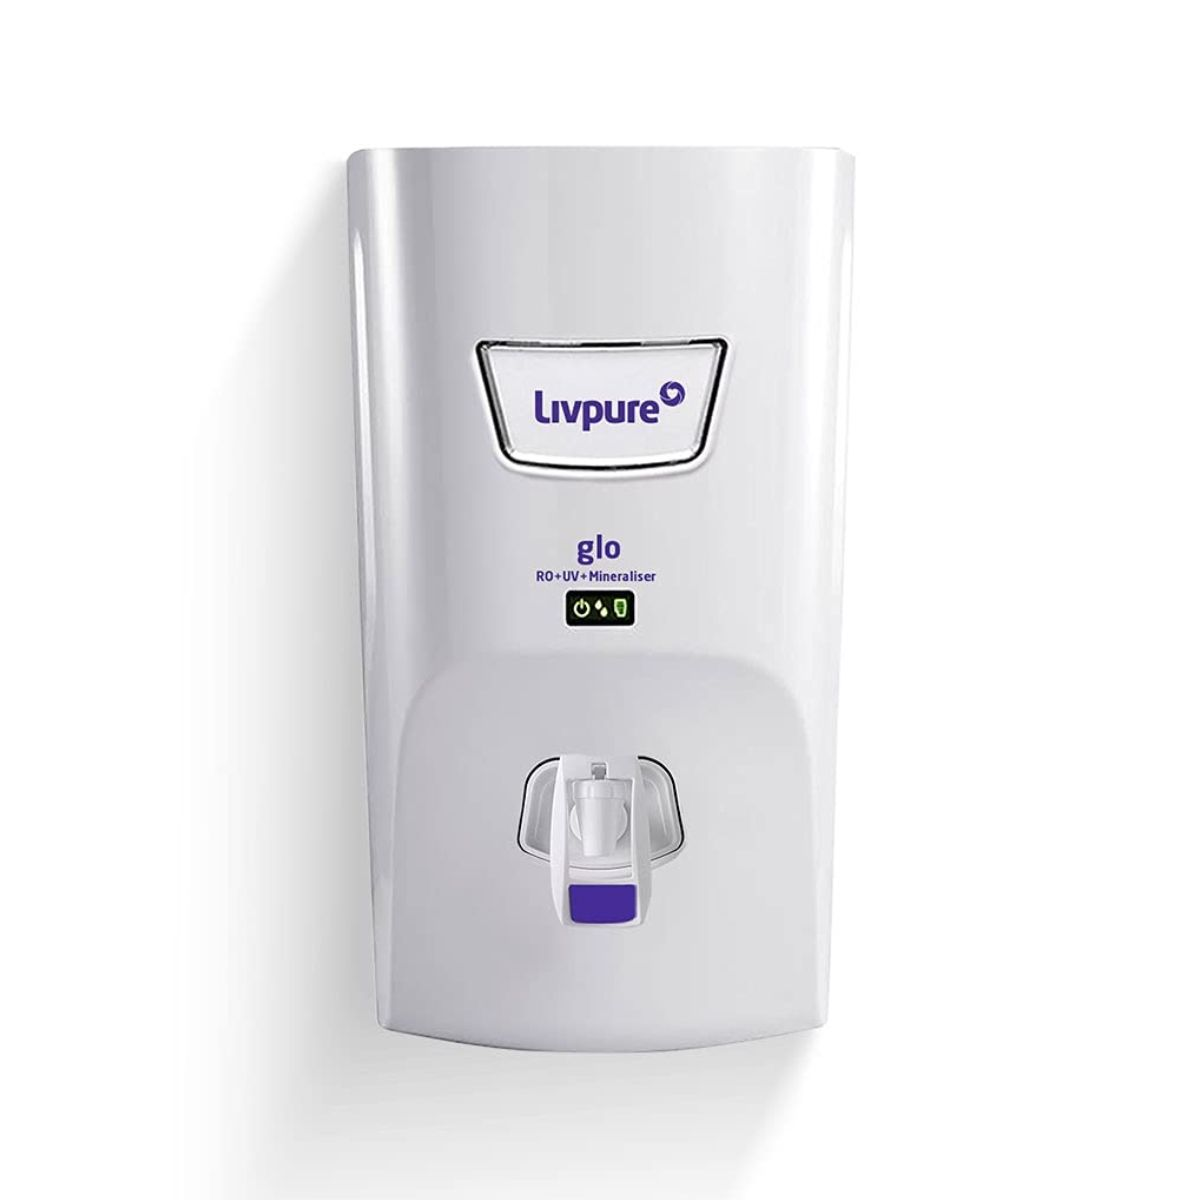 Livpure Glo 7 Ltr Electric Water Purifier